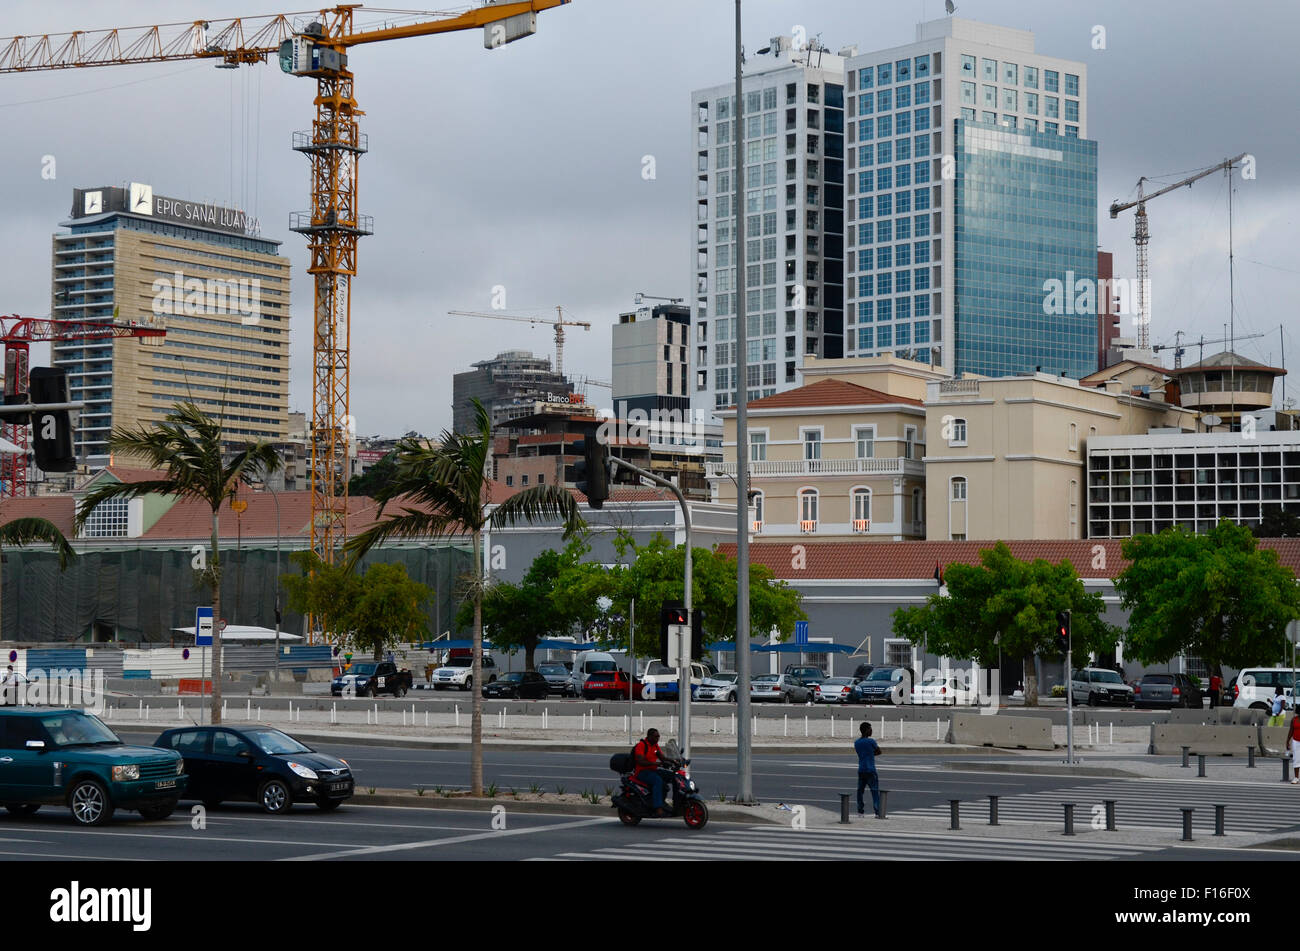 ANGOLA Luanda, sea promenade, due to revenues from oil and diamond exports a construction boom is seen everywhere - Stock Image